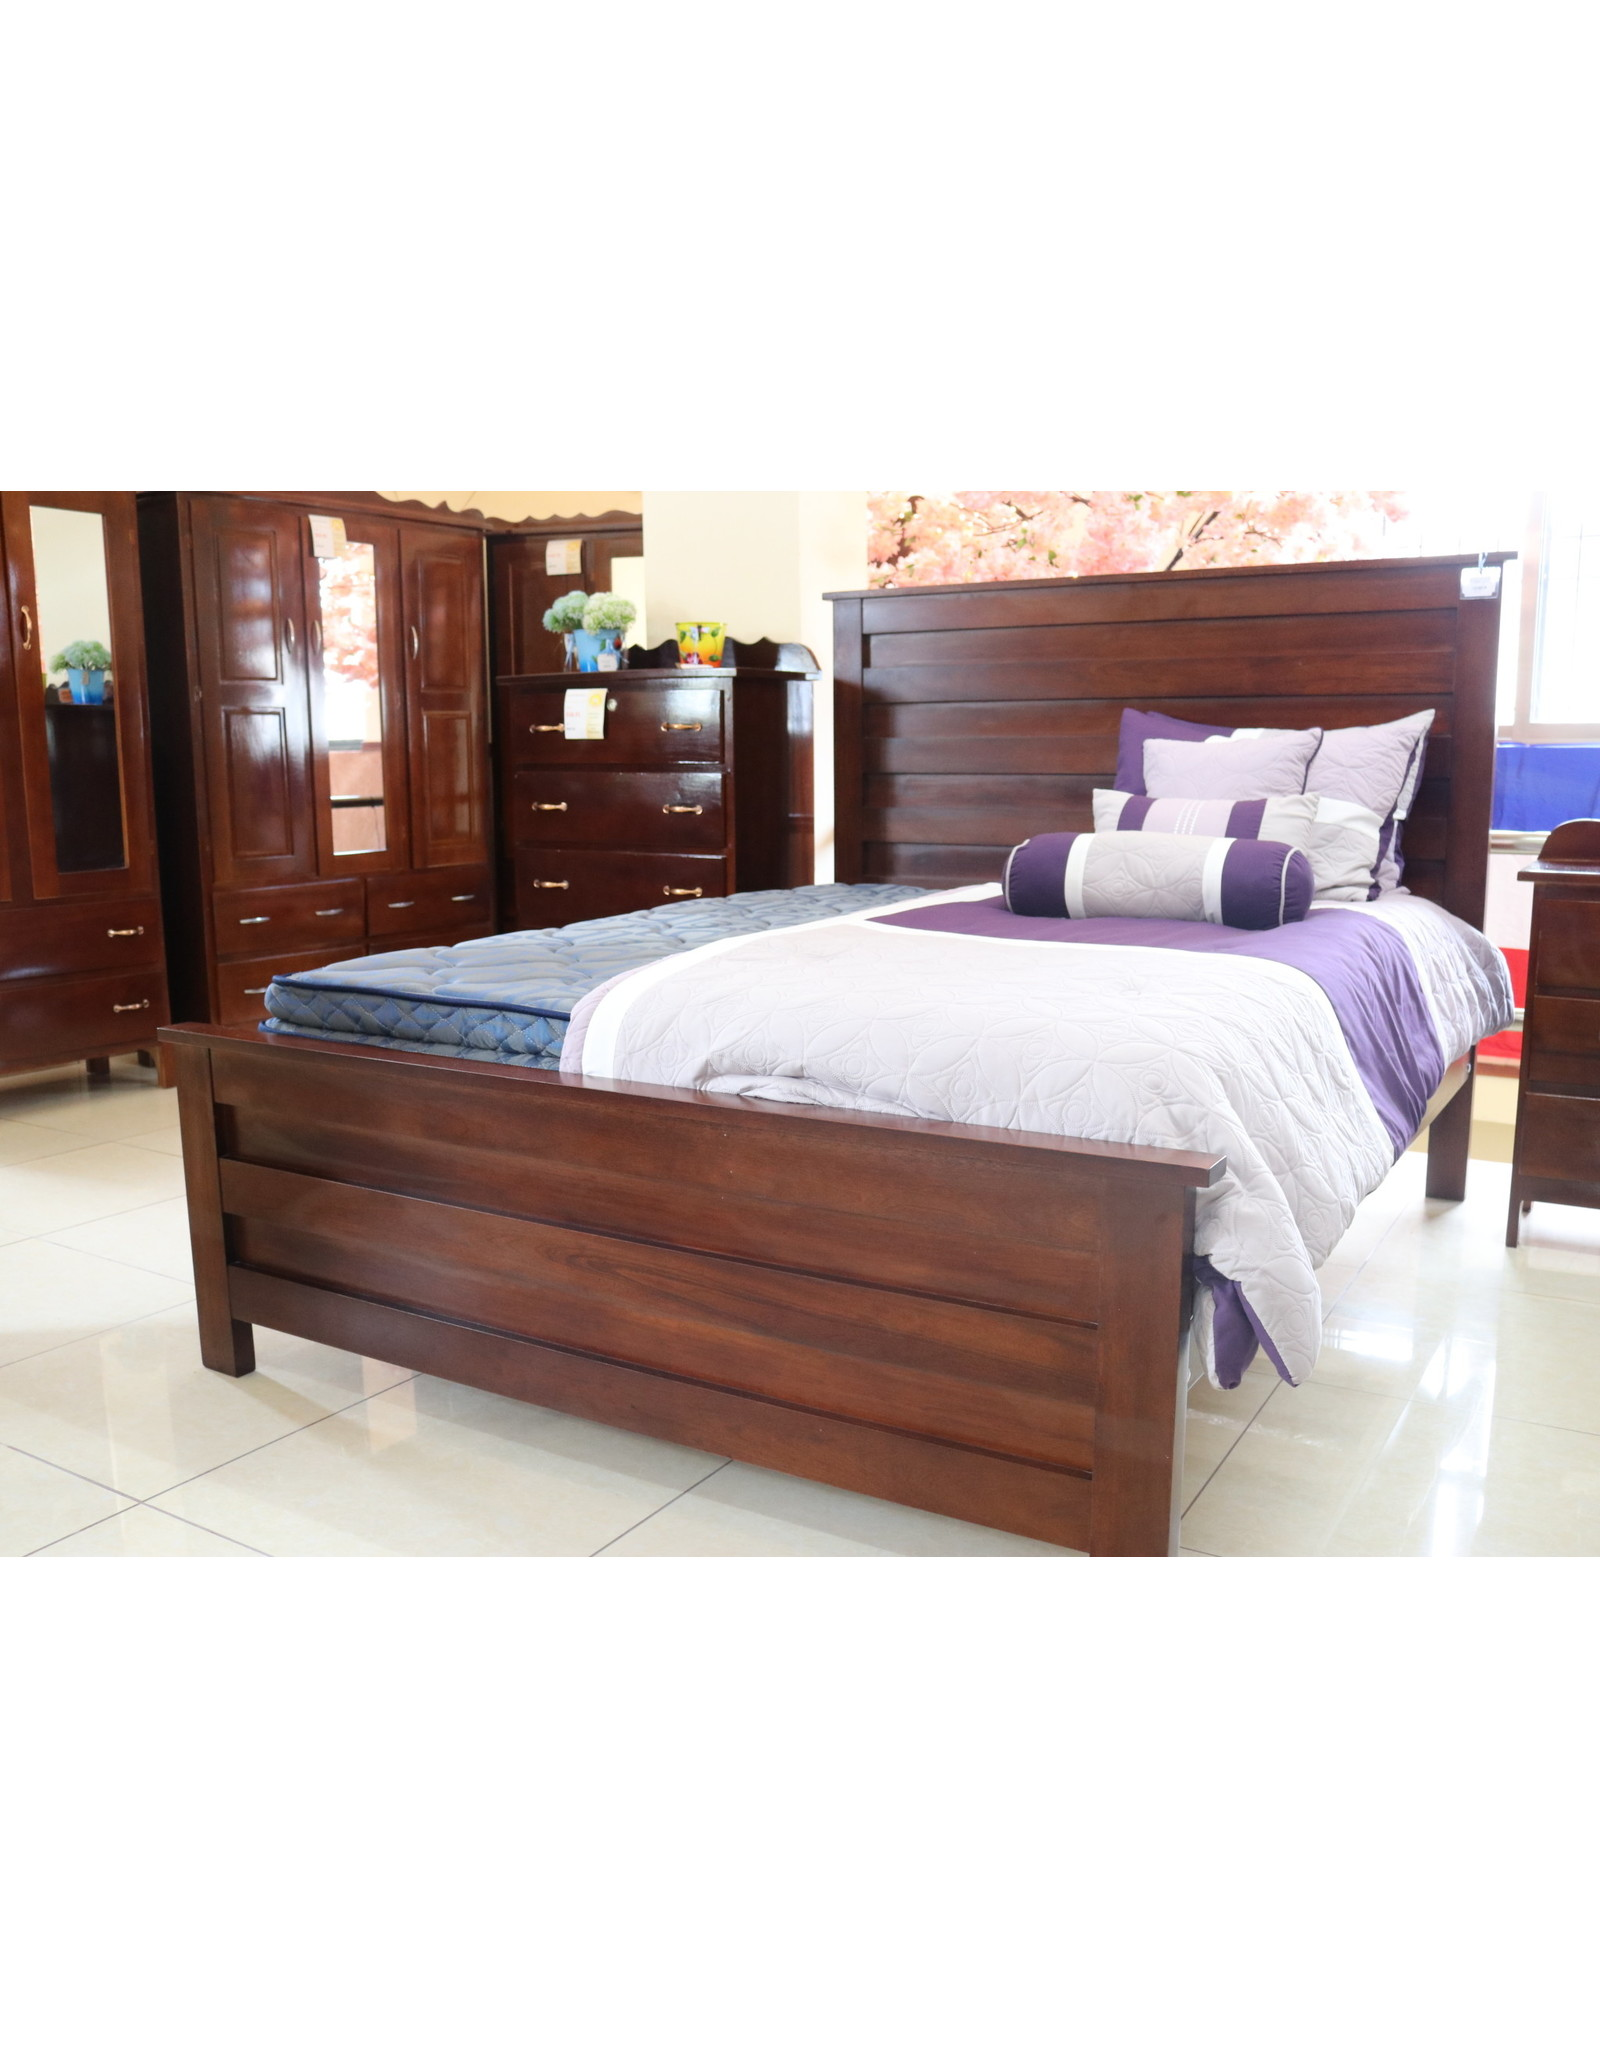 Contemporary Bed King Size